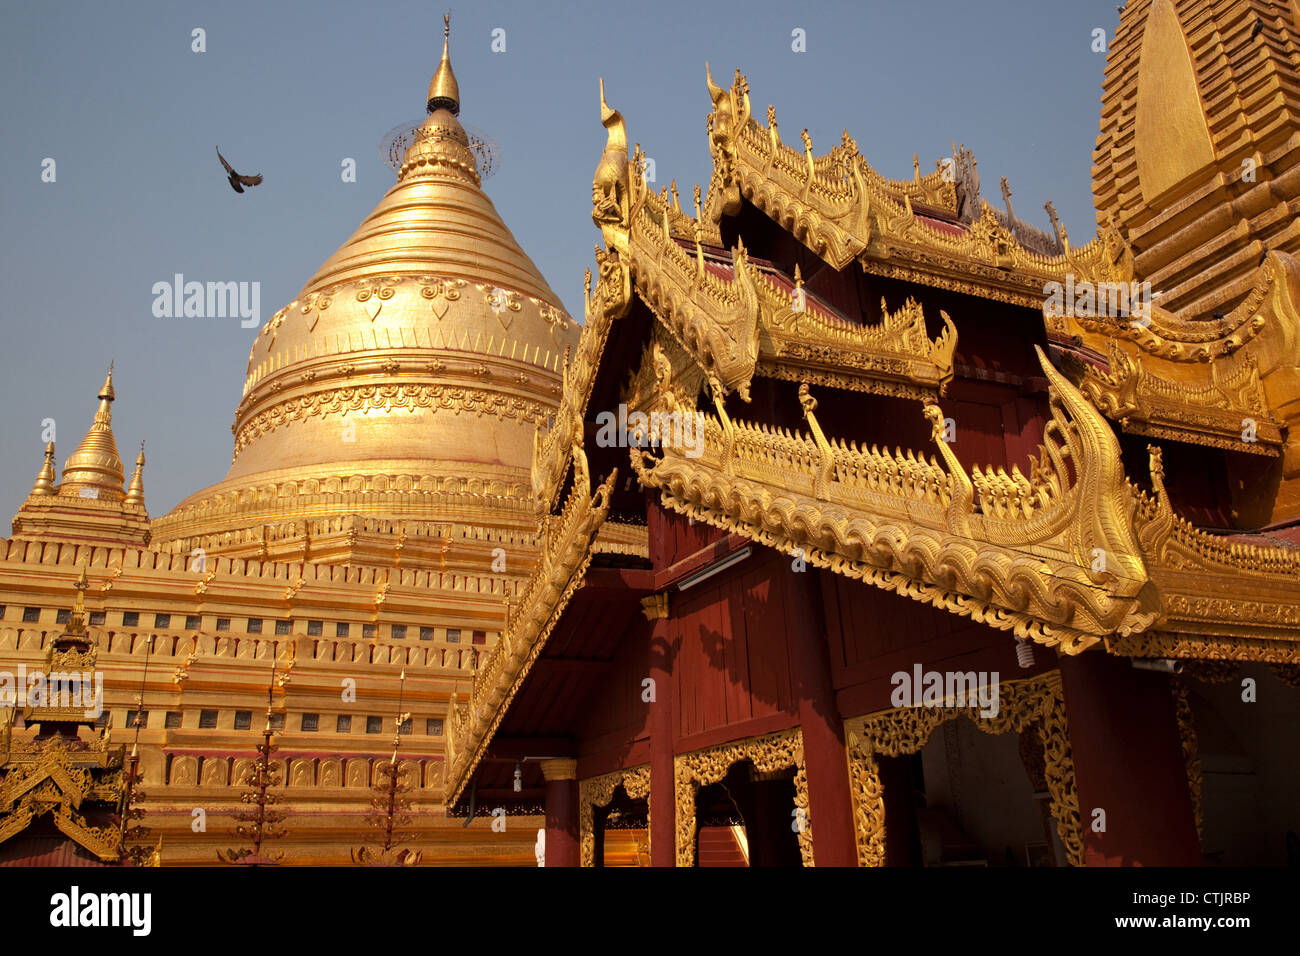 Shwezigon Pagoda (Paya) - a Buddhist temple located in Nyaung U, Myanmar (Burma). Stock Photo